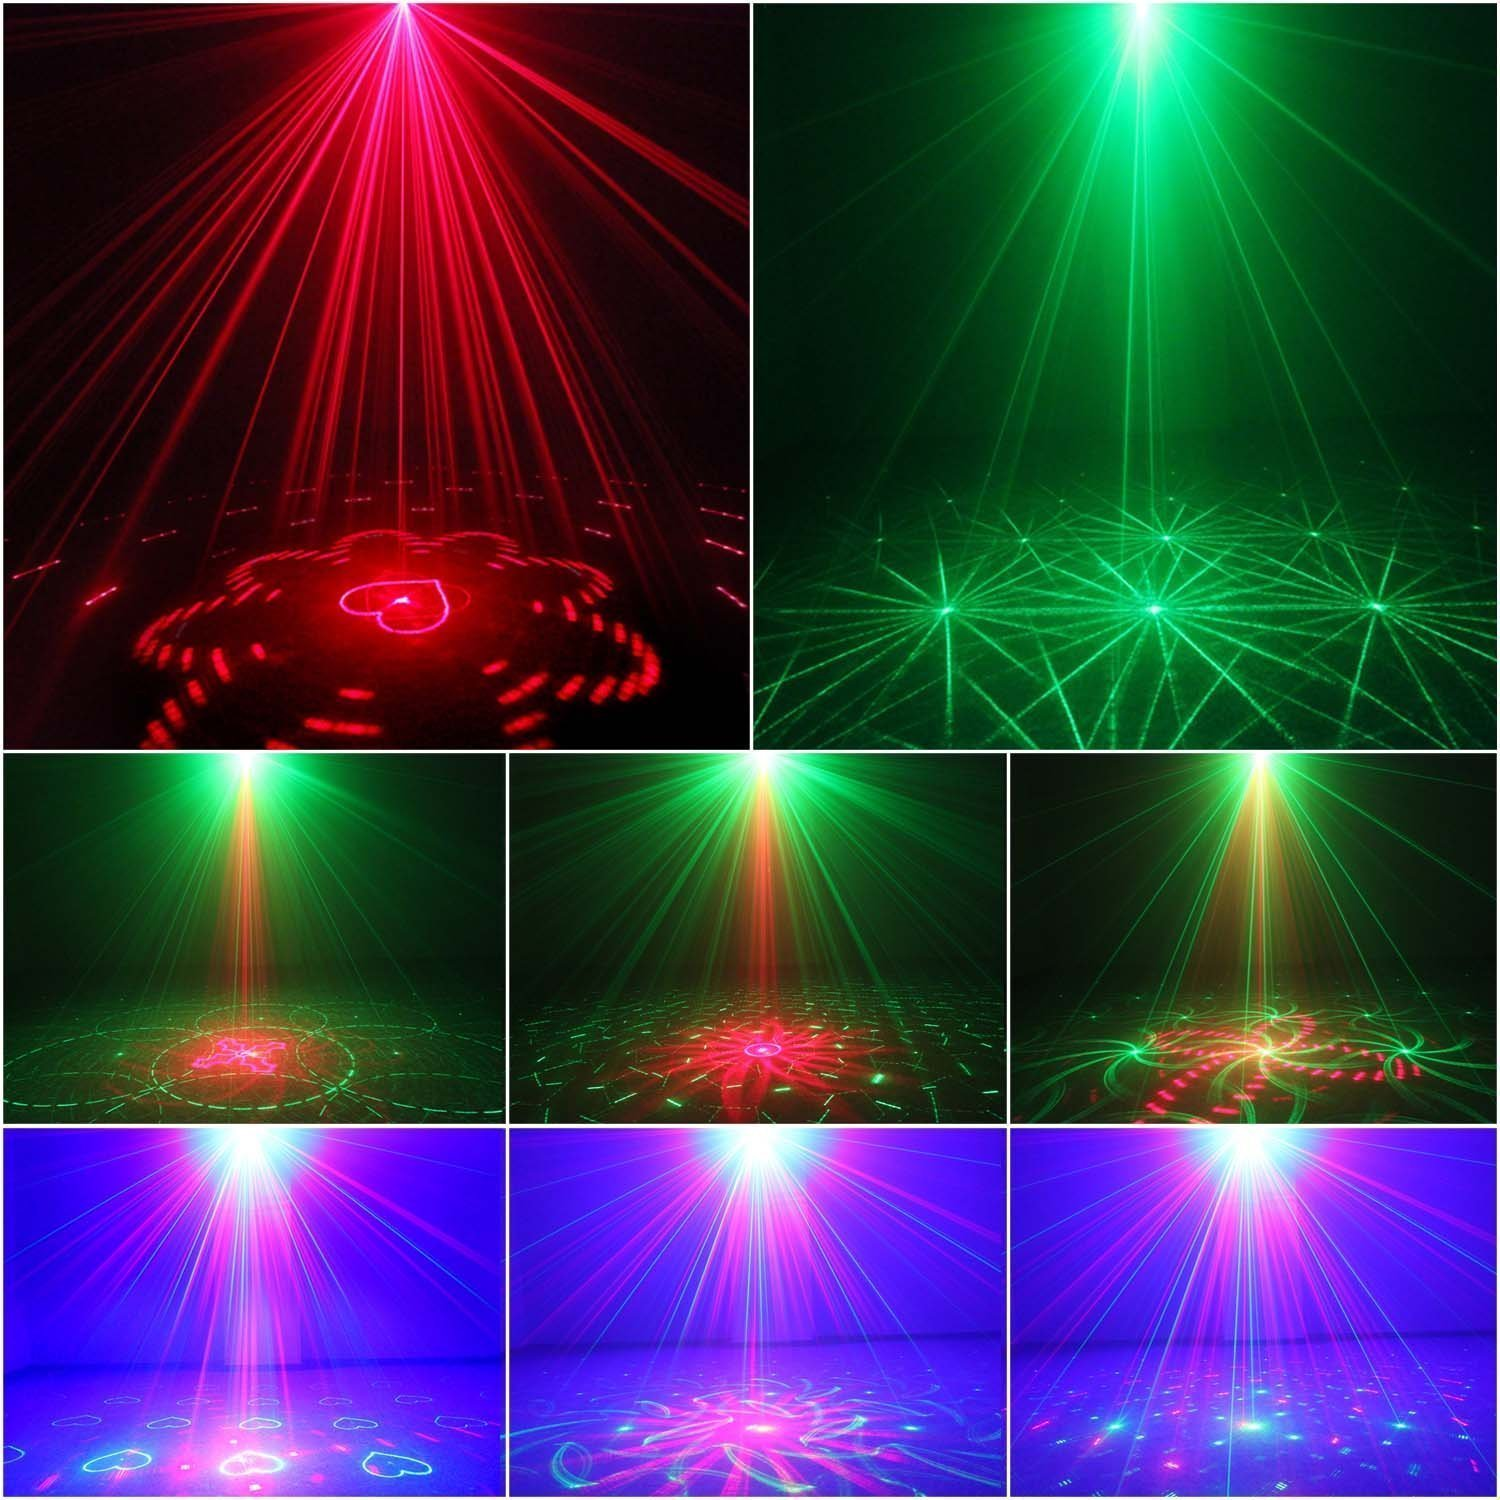 Amazon com  Laser Light 40 Patterns LED Projector DJ Gear Stage Lighting  Red and Green Show With Blue Auto Sound active Professional Disco DJs  Family Party. Amazon com  Laser Light 40 Patterns LED Projector DJ Gear Stage